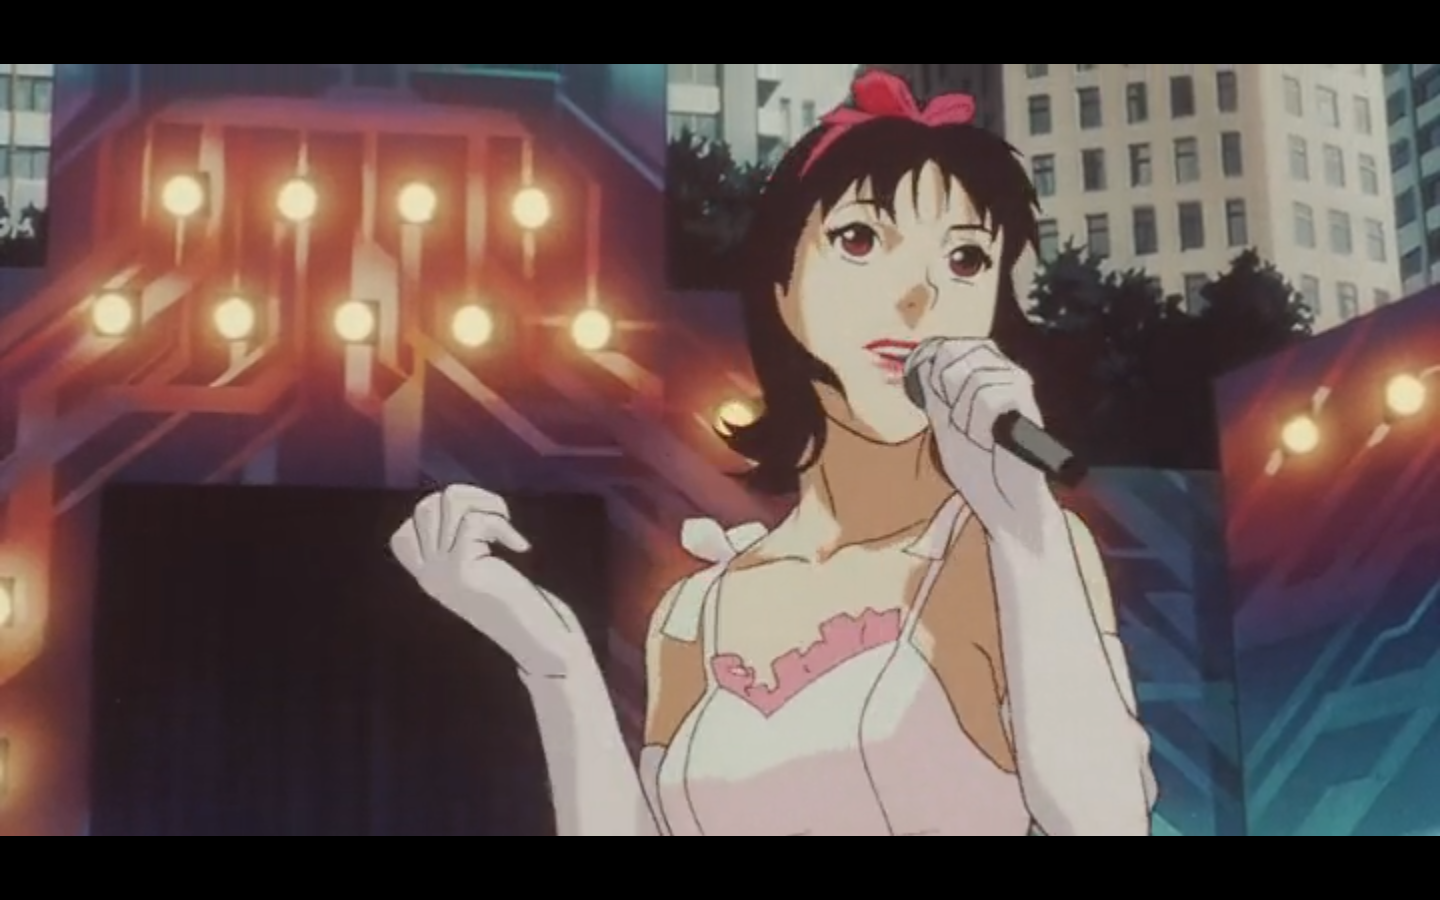 Perfect Perfect Blue Mima Singing 499905 Hd Wallpaper Backgrounds Download